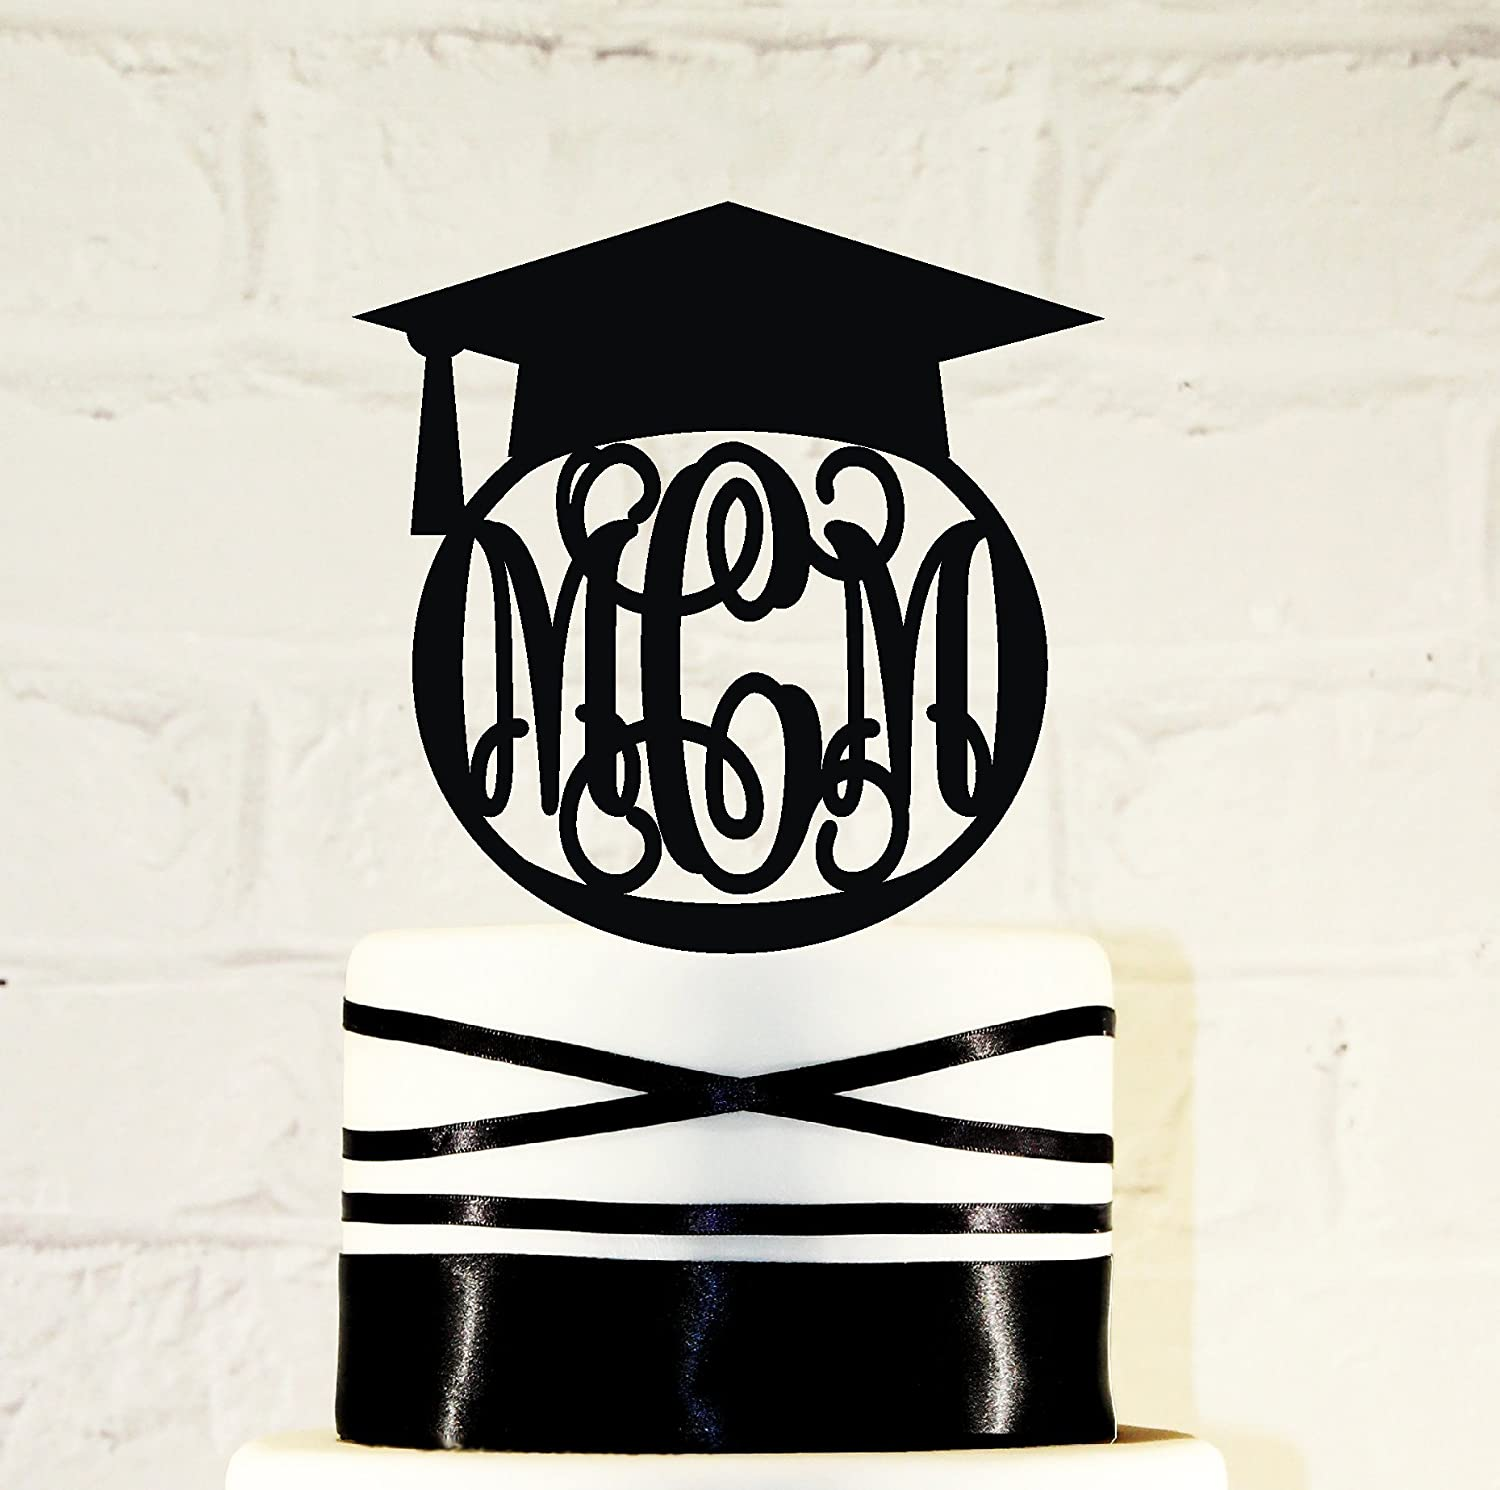 Initials Graduation 2016 Personalized Cake Topper Graduation Party